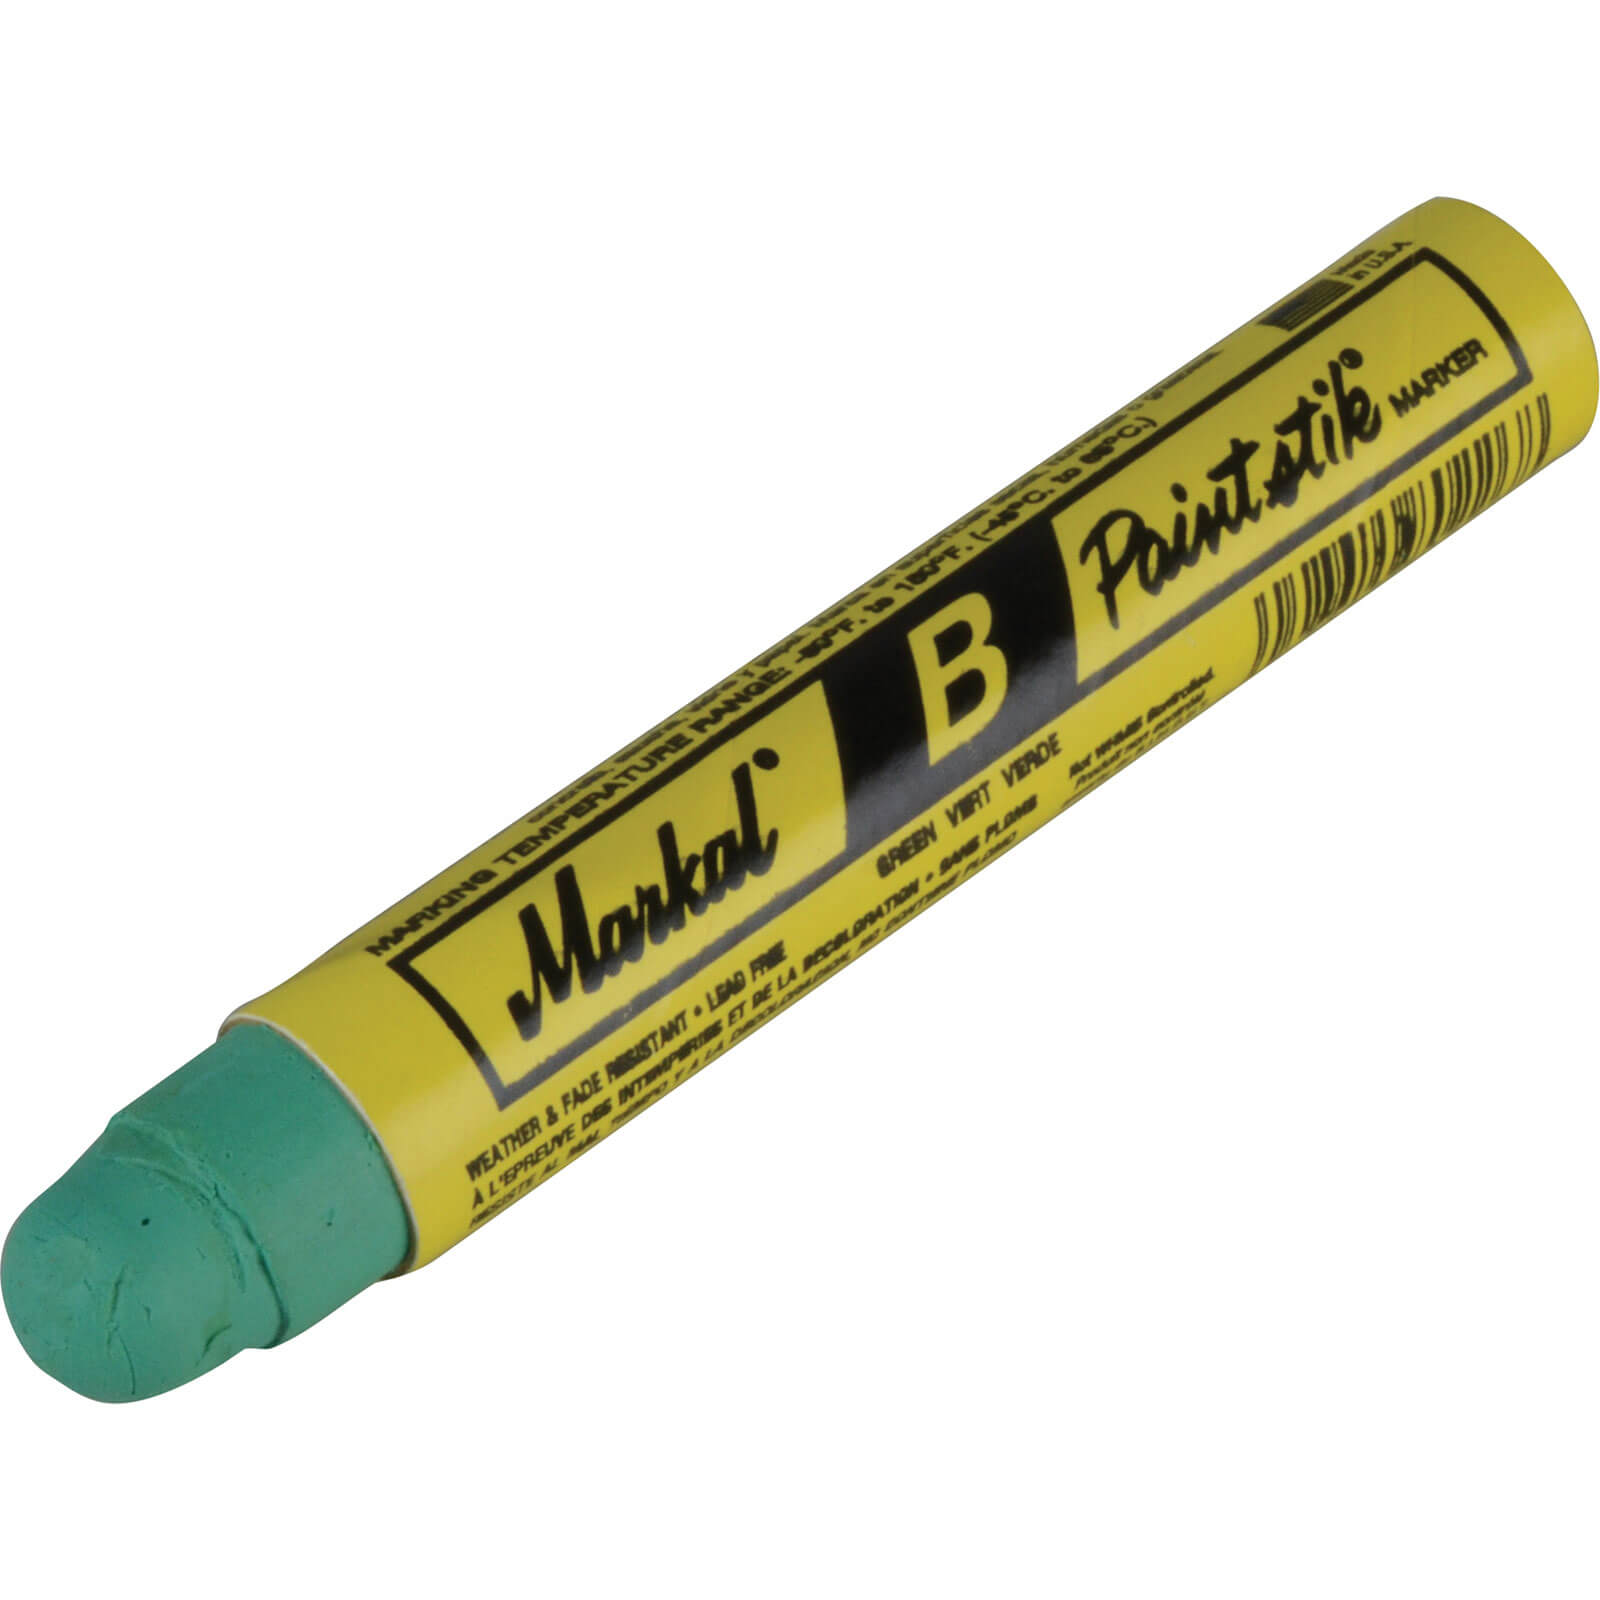 Tooled Up/Tools/Lasers & levelling/Markal Cold Surface Marker B Green